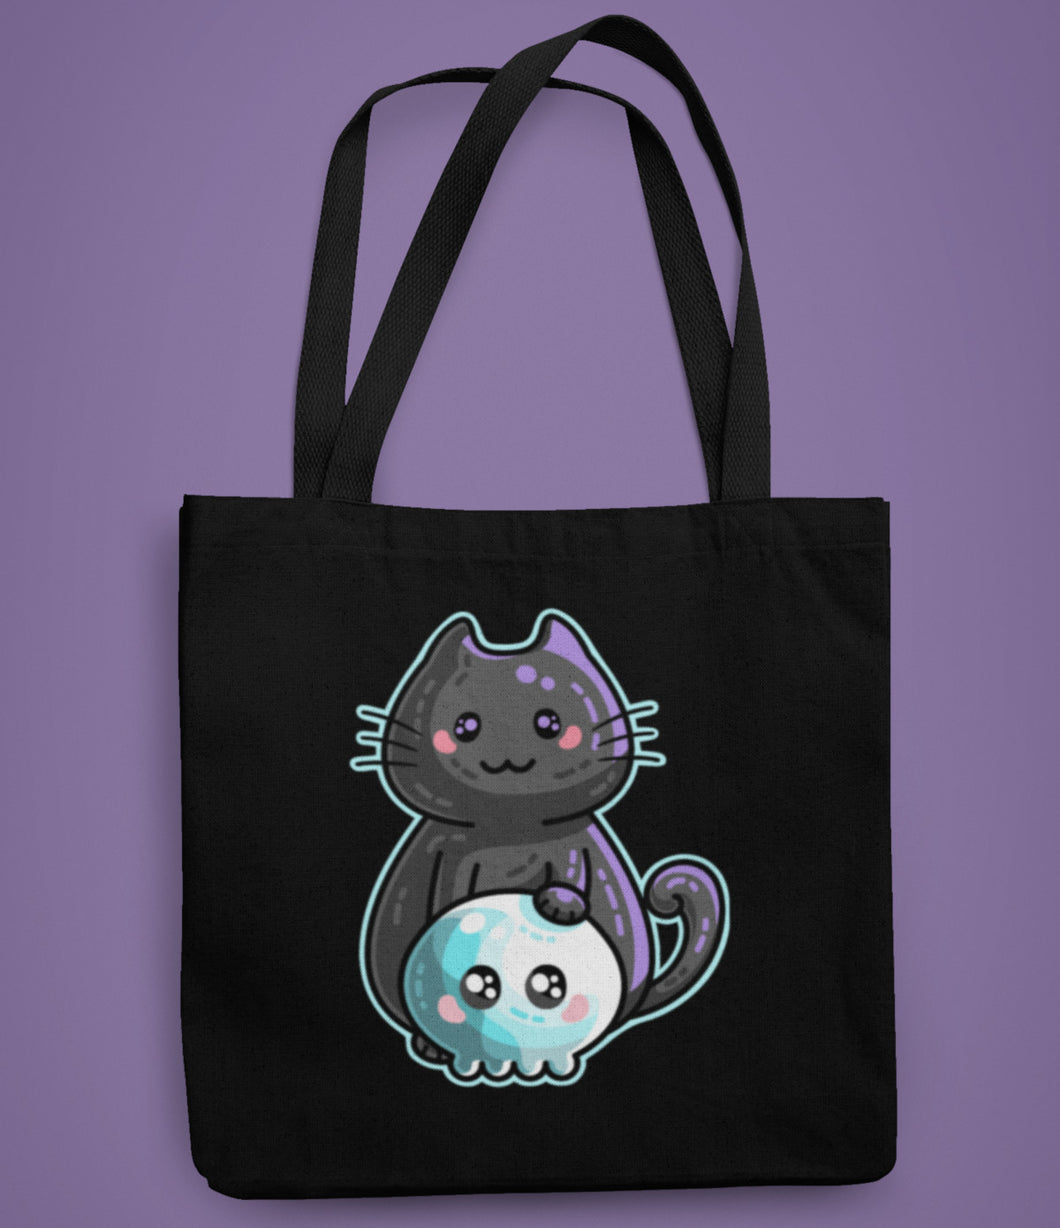 A dark blue coloured fabric tote bag lying flat against a purple background with a design in the center of a kawaii cute black cat with its paw resting on a kawaii cute skull.